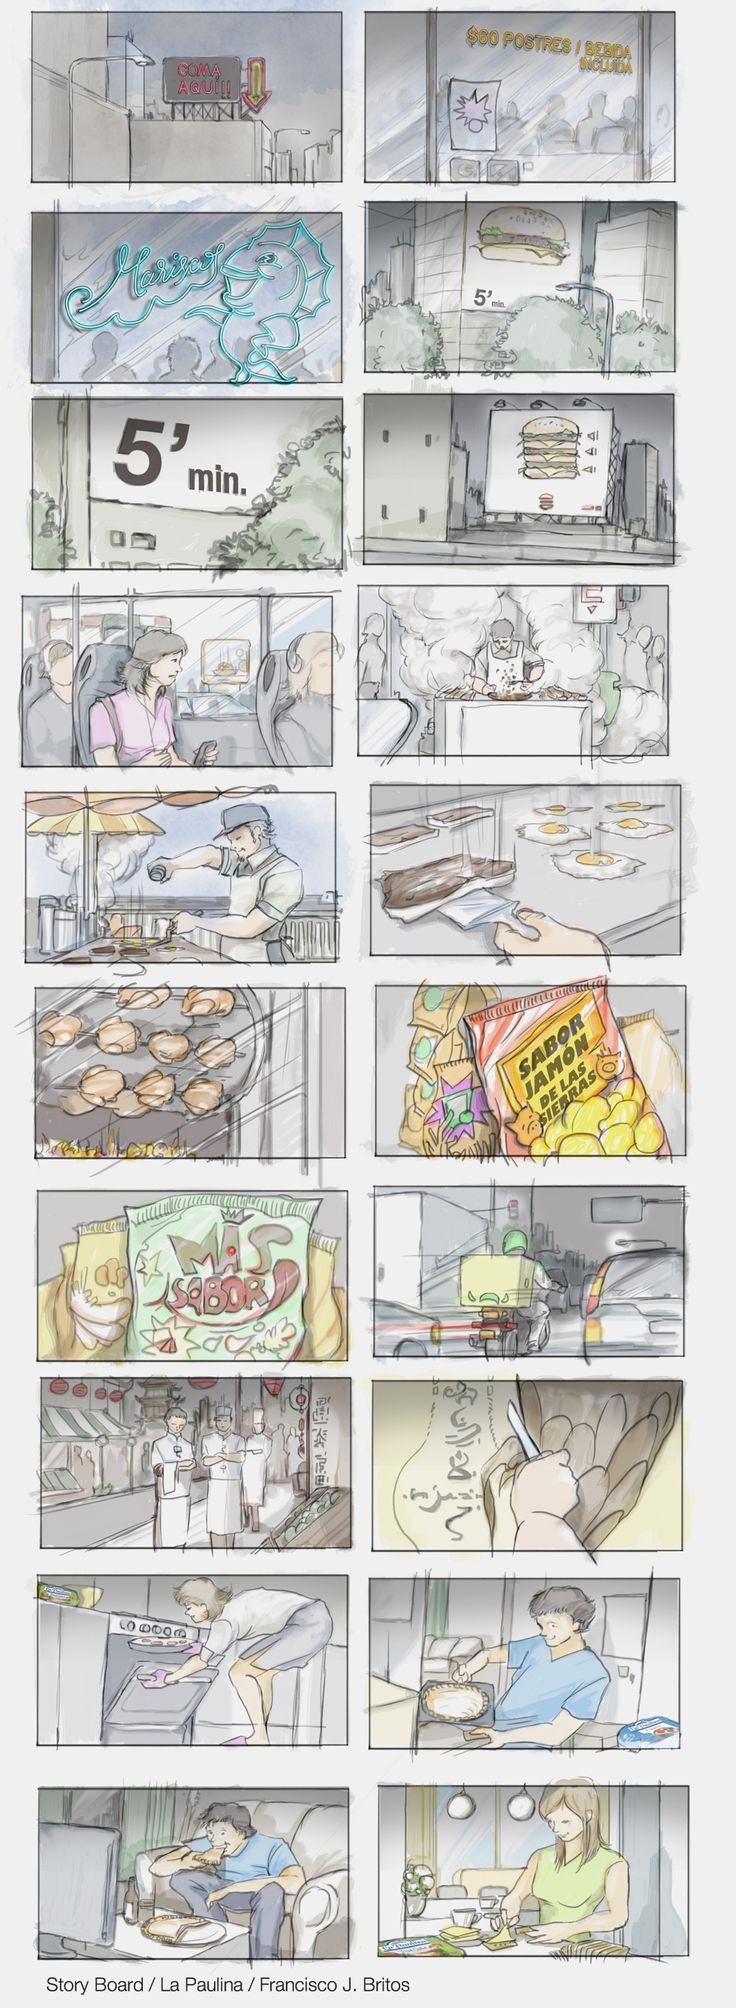 storyboard for advertising LA PAULINA